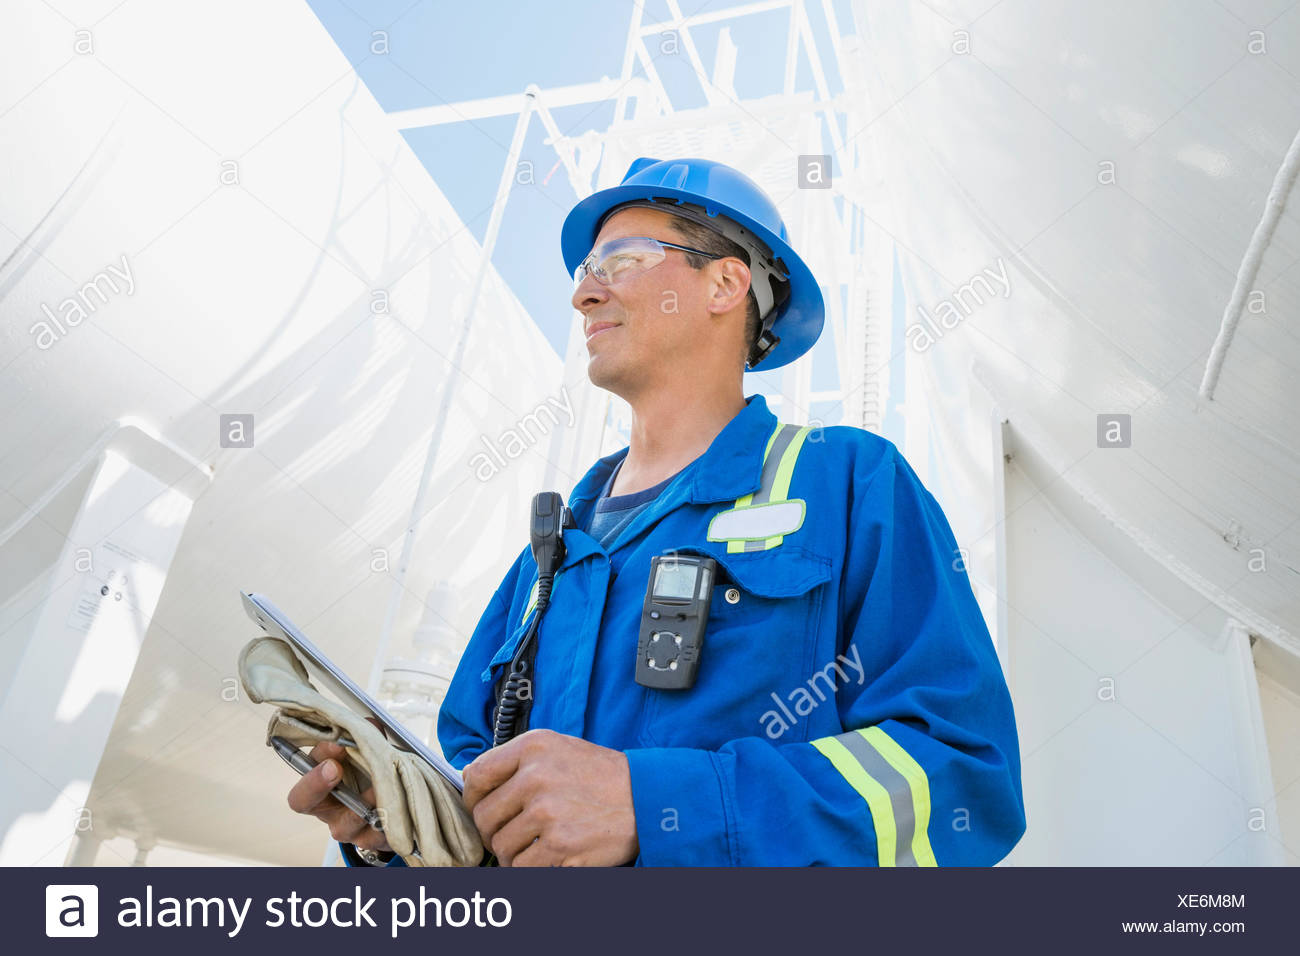 Male worker at gas plant - Stock Image